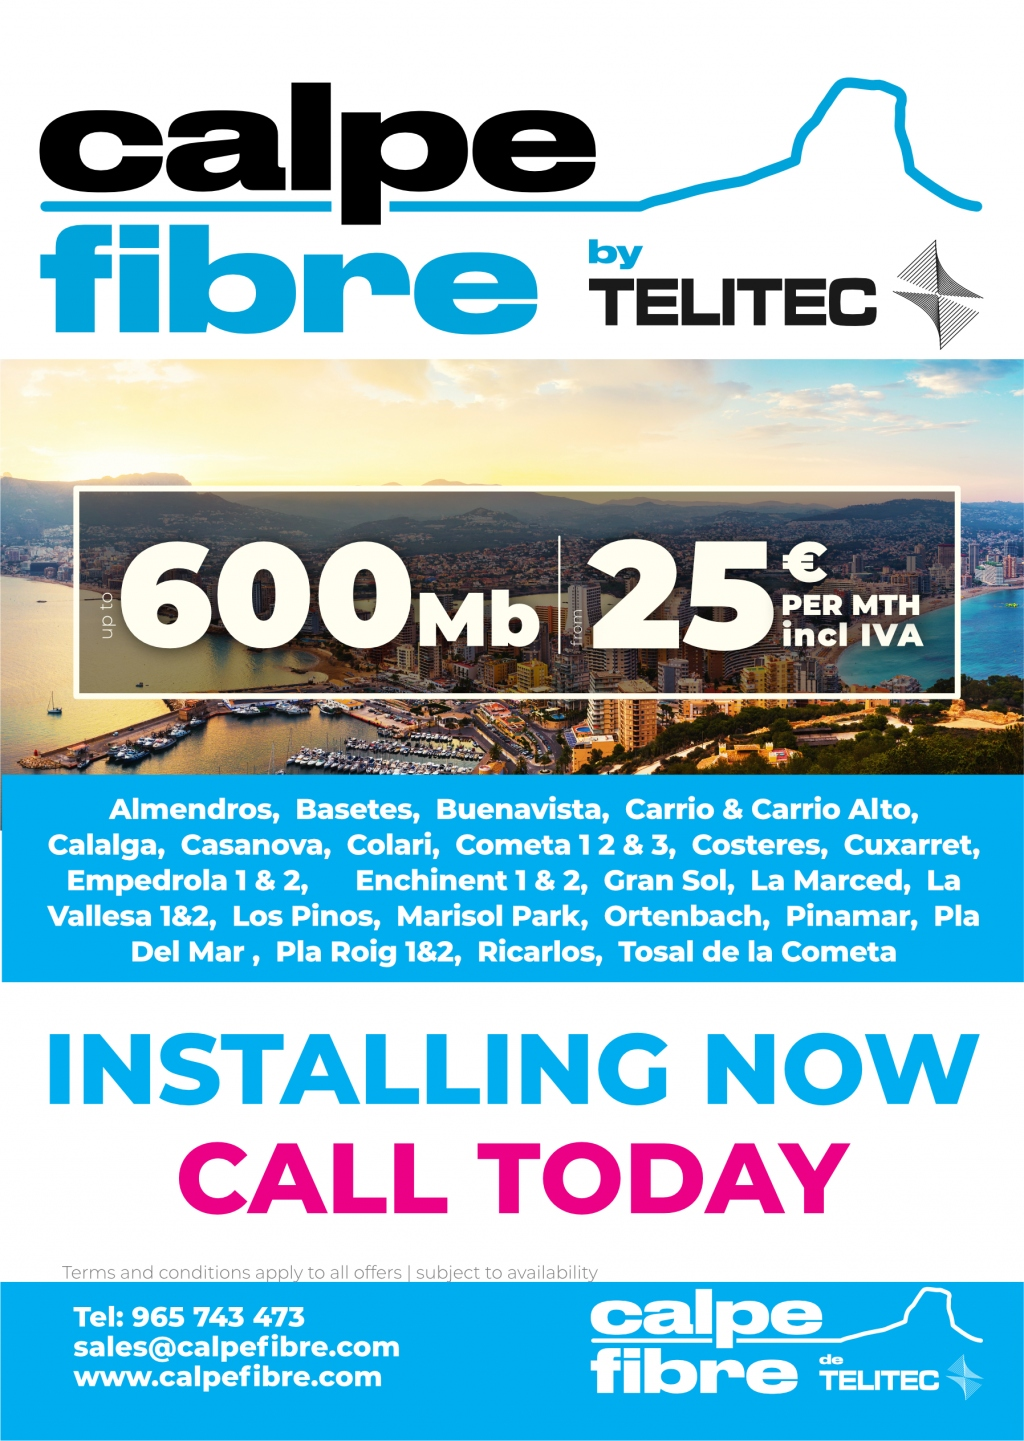 Calpe Fibre by Telitec is installing Fibre Optic in the urbanisations of Calpe